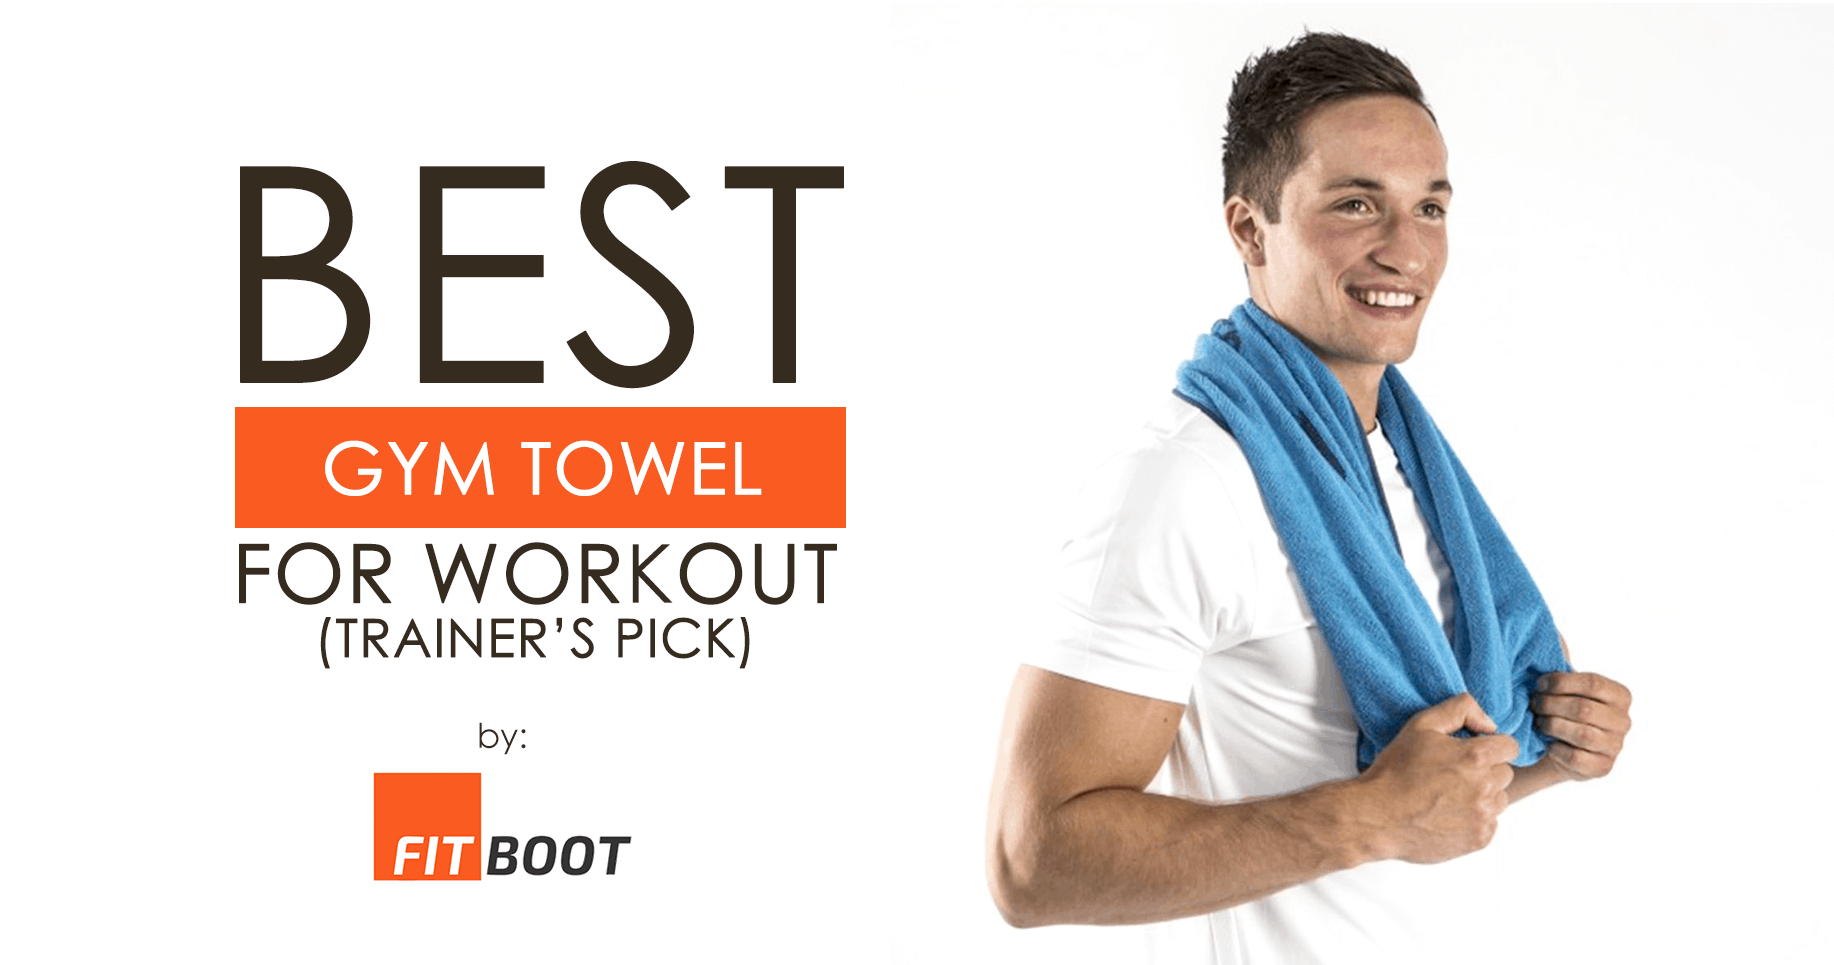 Best Gym Towel for Workout (Trainer's Pick)